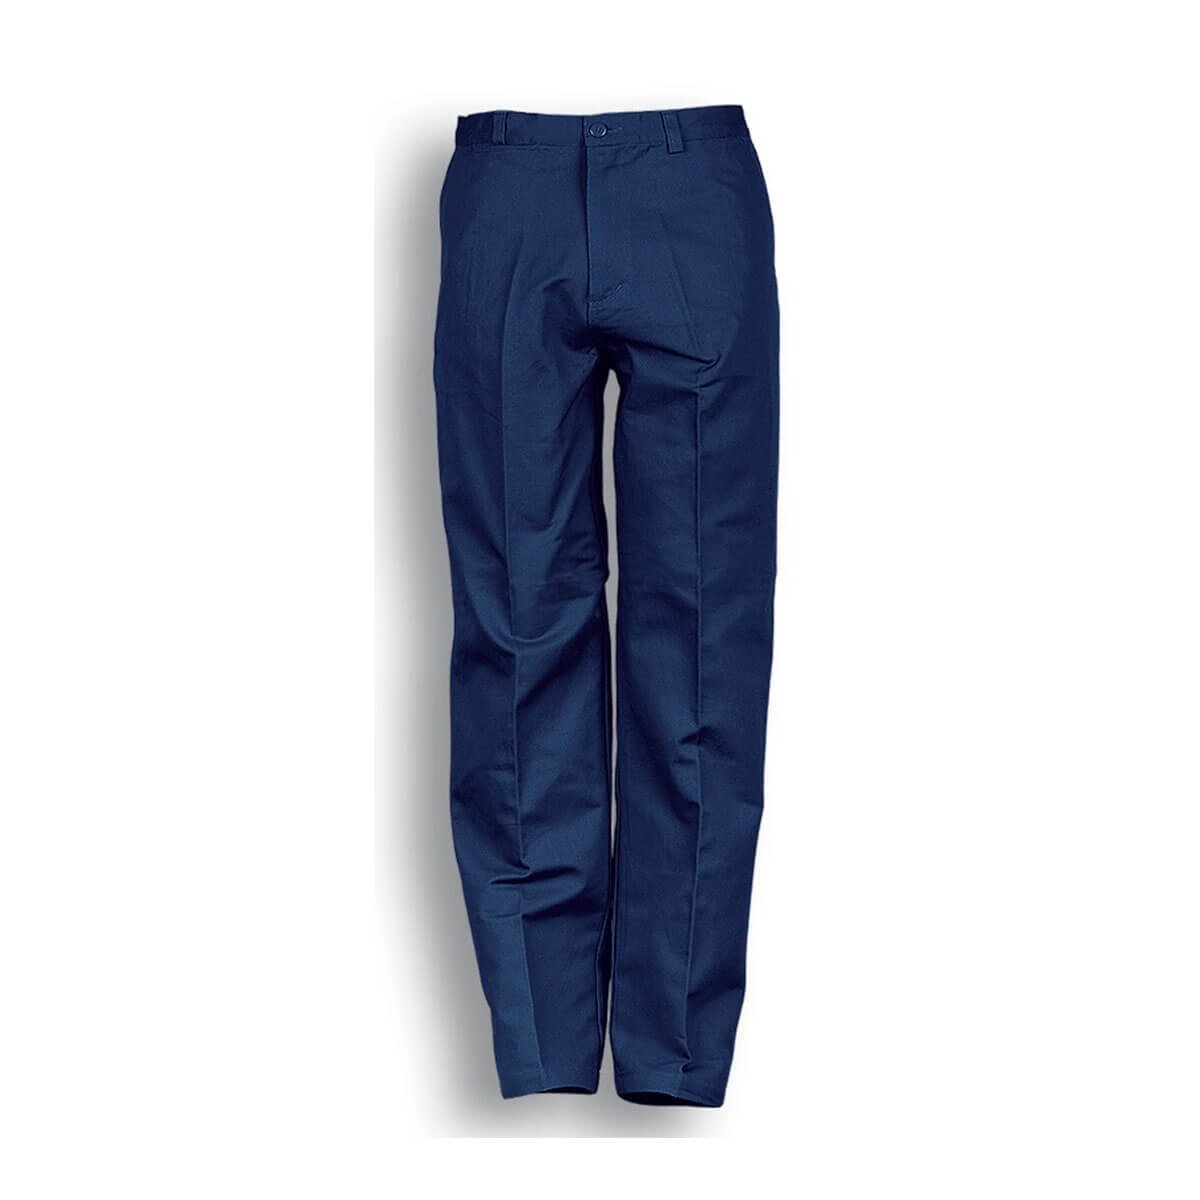 COTTON DRILL WORK PANTS-Navy